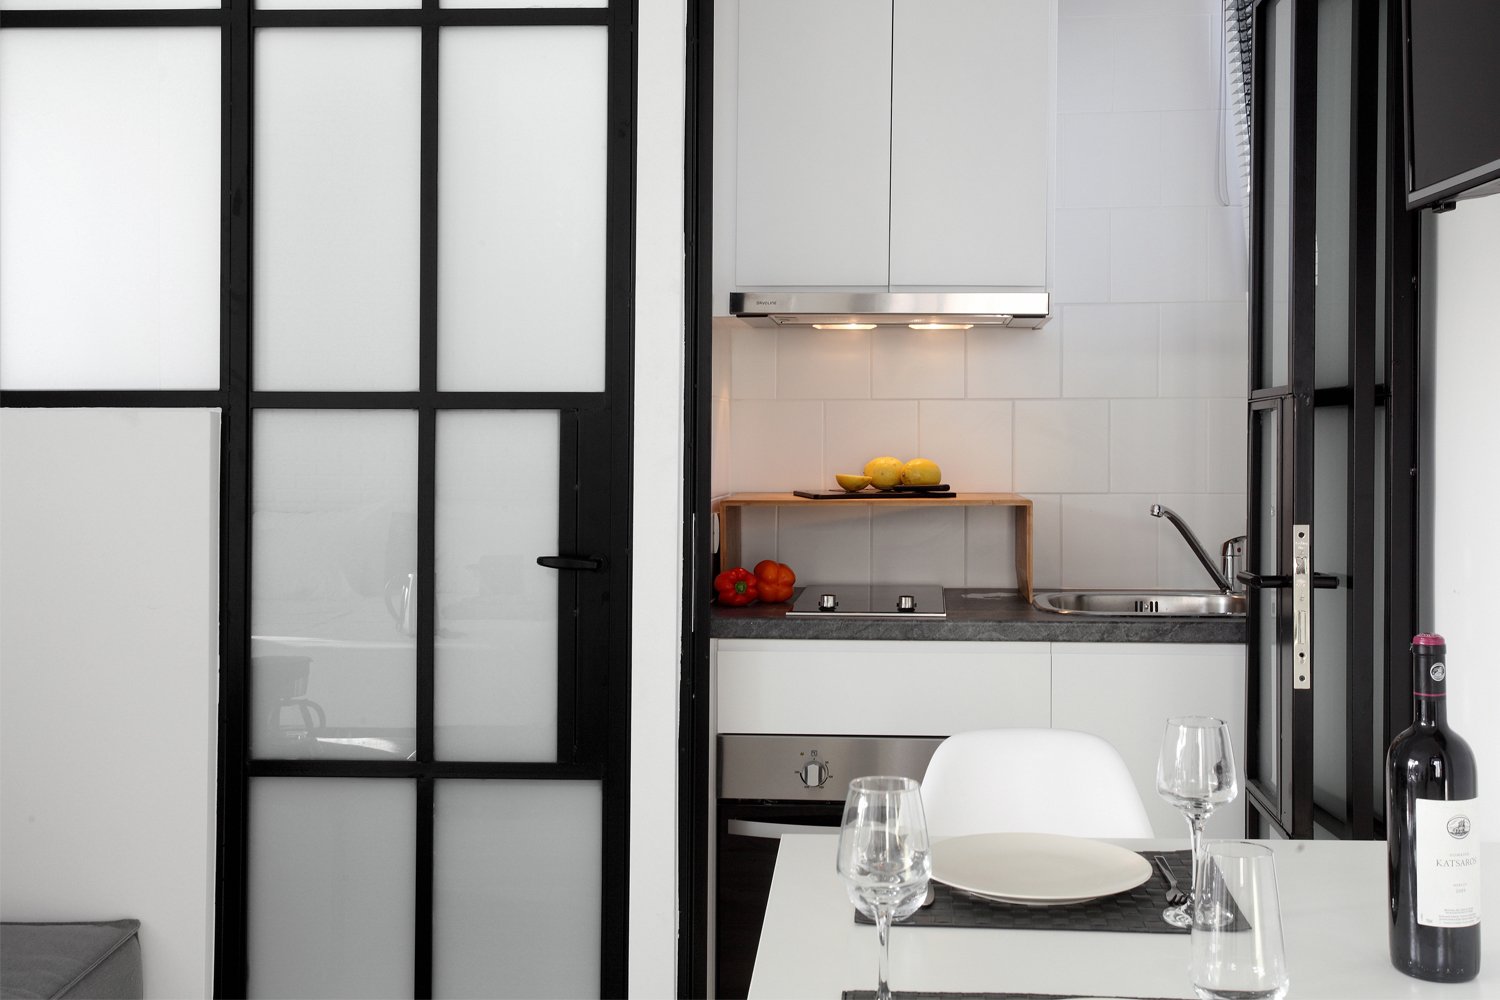 Athens view lofts create new ideas architects - Lavish white and grey kitchen for hygienic and bright view ...